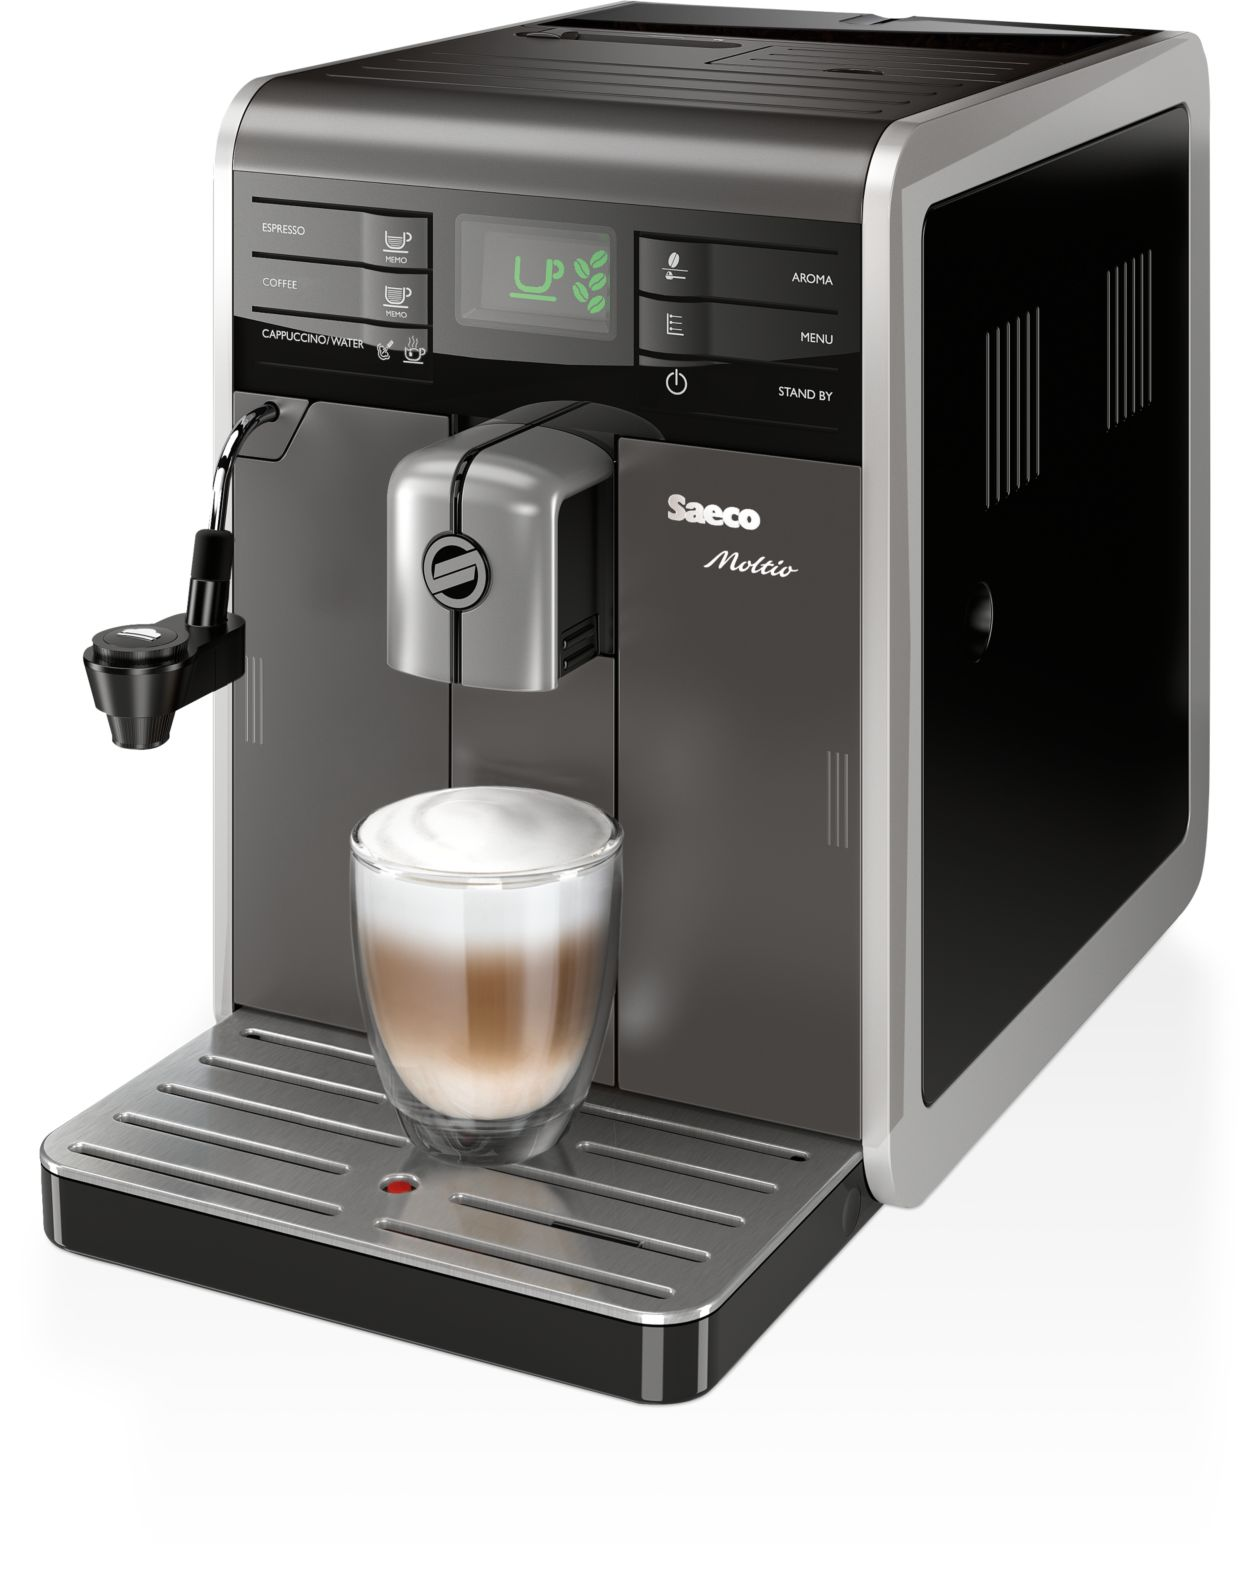 Electronic Saeco Coffee Machine Prices moltio super automatic espresso machine hd876803 saeco every moment deserves its coffee flavor